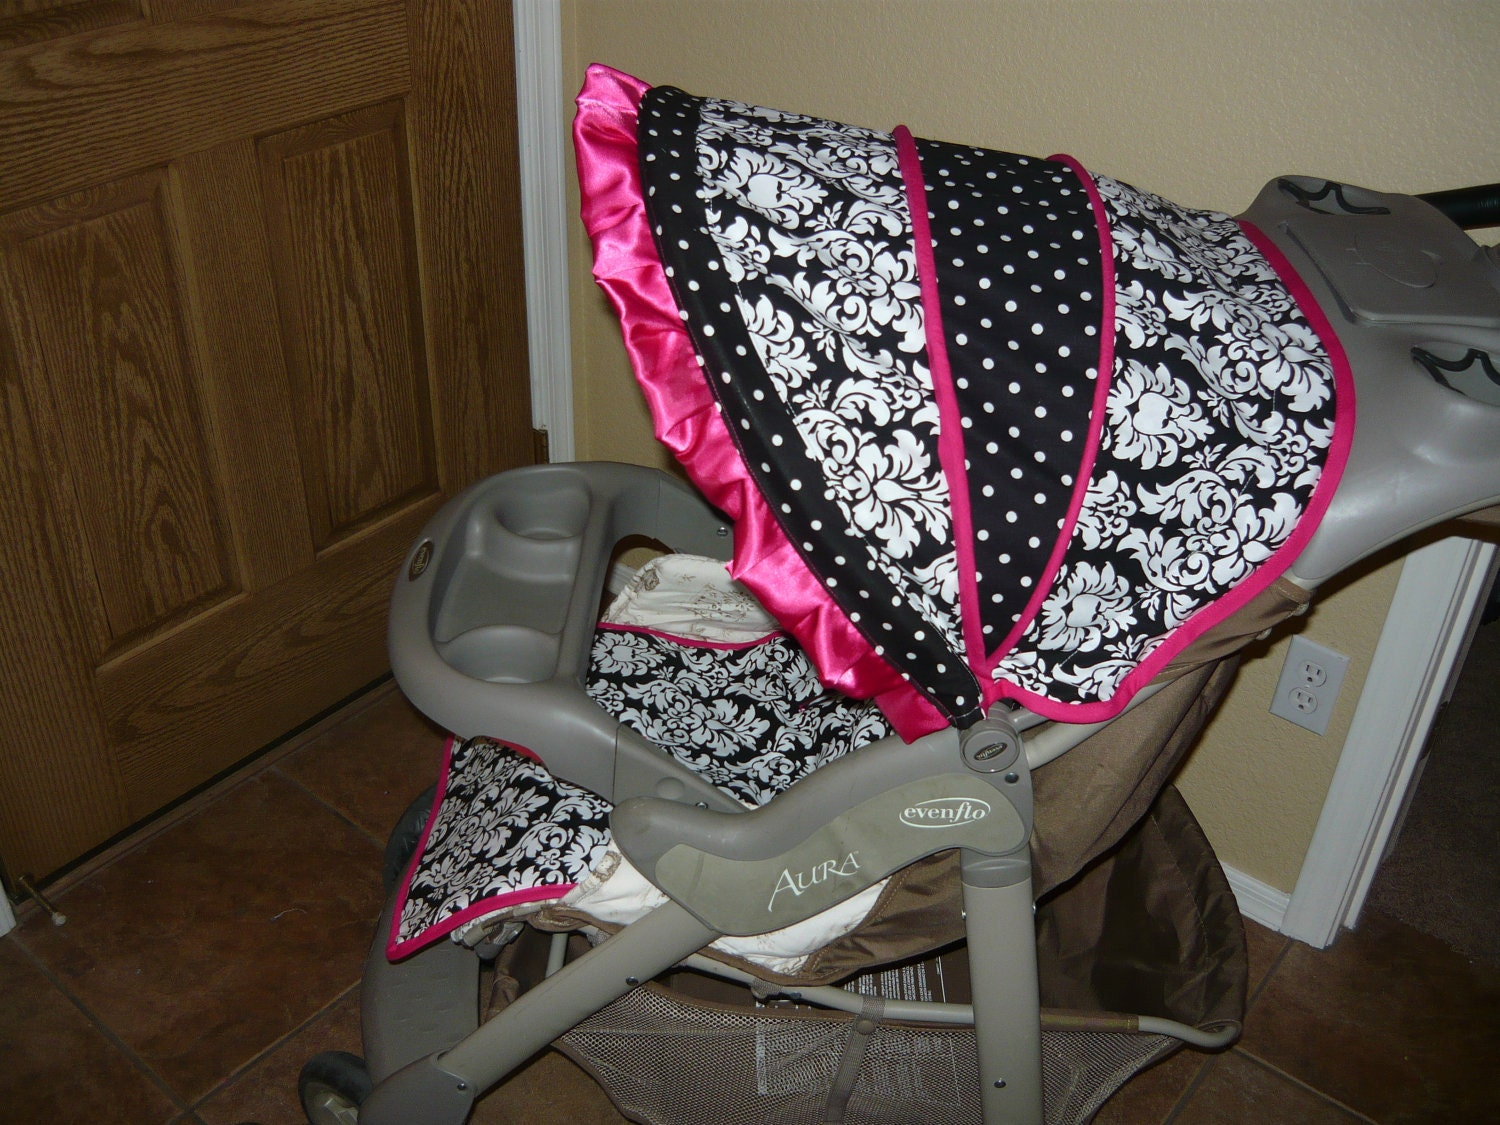 Design Your Own Stroller Cover